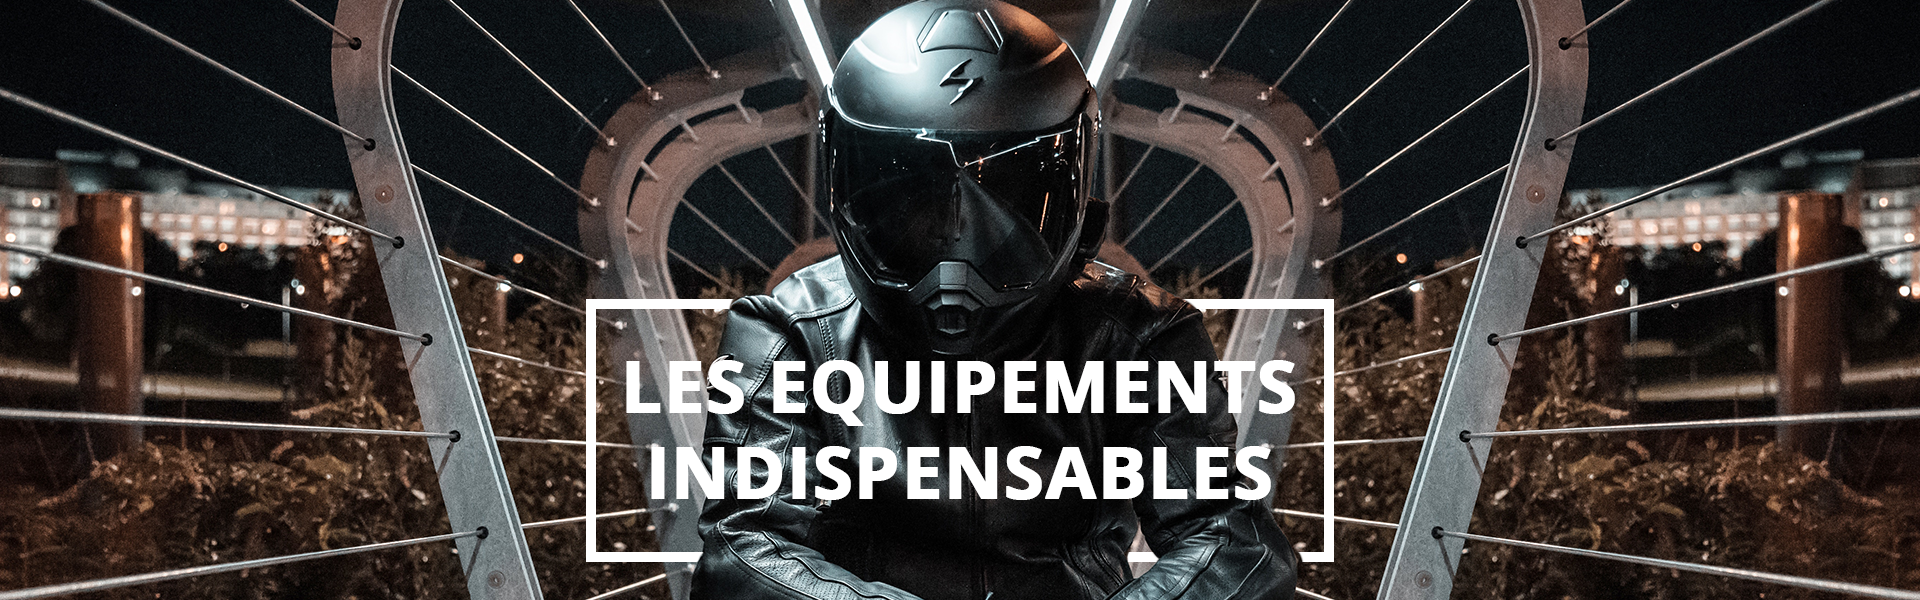 Equipements-pilotes-scooters-1